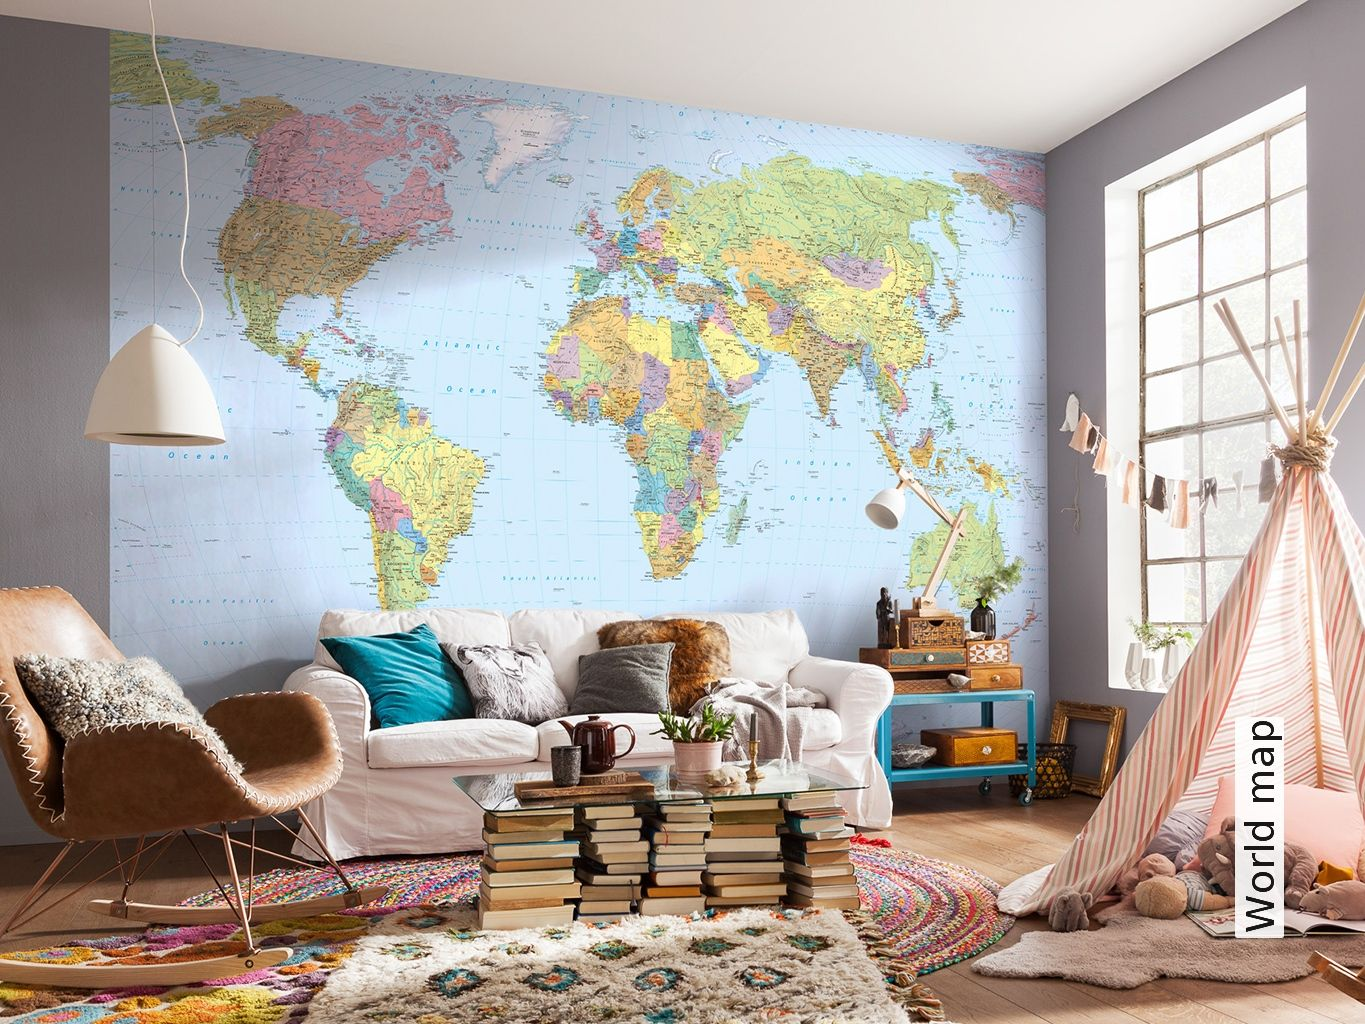 Kinderzimmer Tapete Ideen World Map In 2019 Ideas For The House Weltkarte Wand